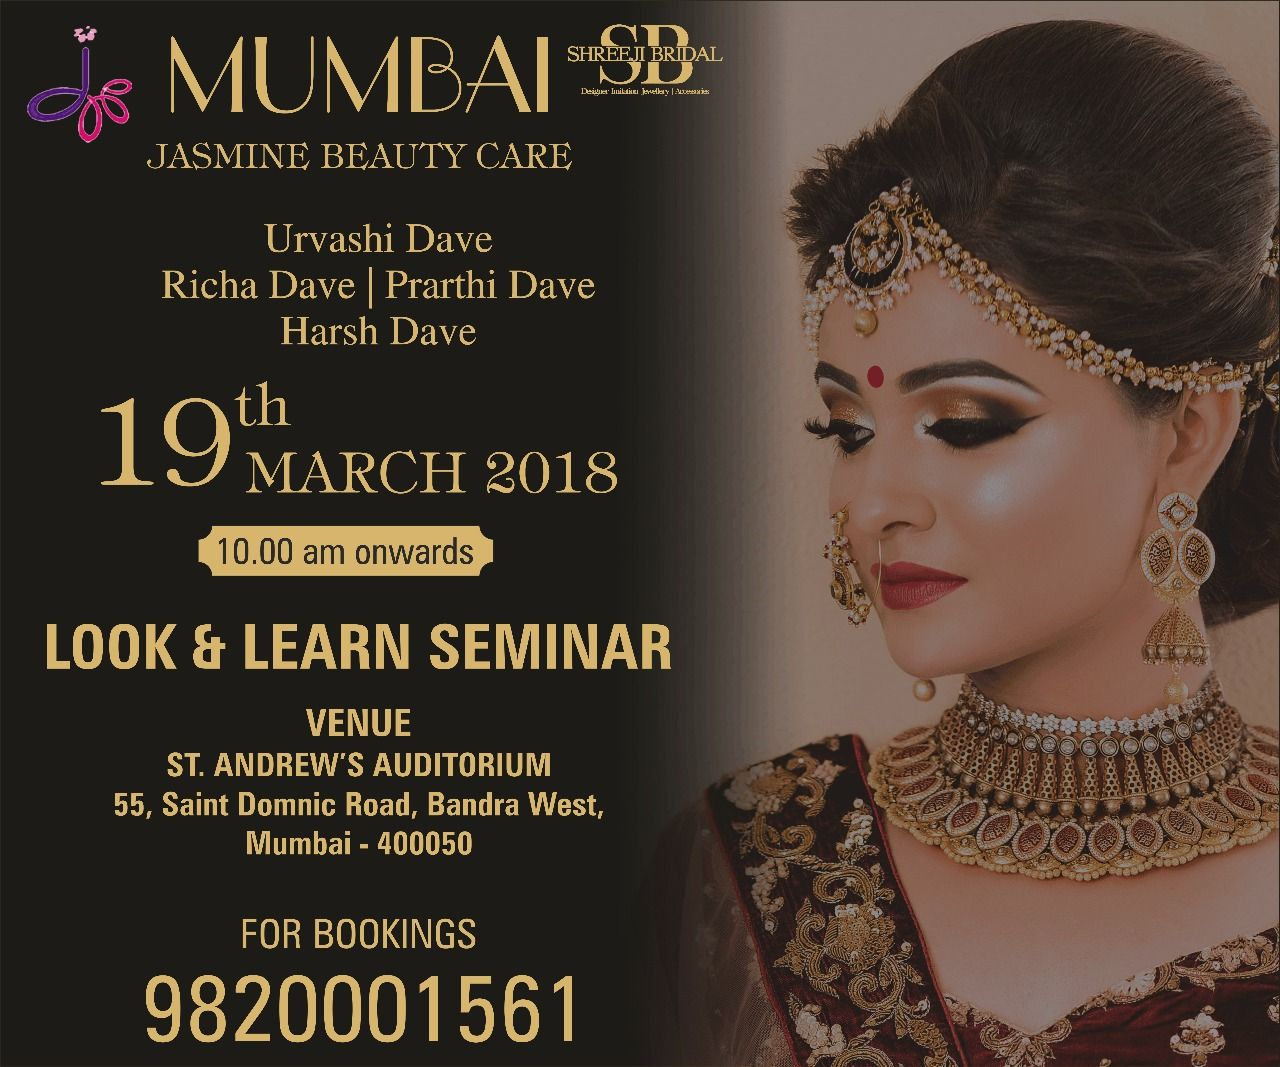 We Are Coming Up With Our New Look Learn Seminar At Mumbai On 19 March 2018 So Till Date Stay Tune With Us Performer Team Seminar Bride Makeup Beauty Care